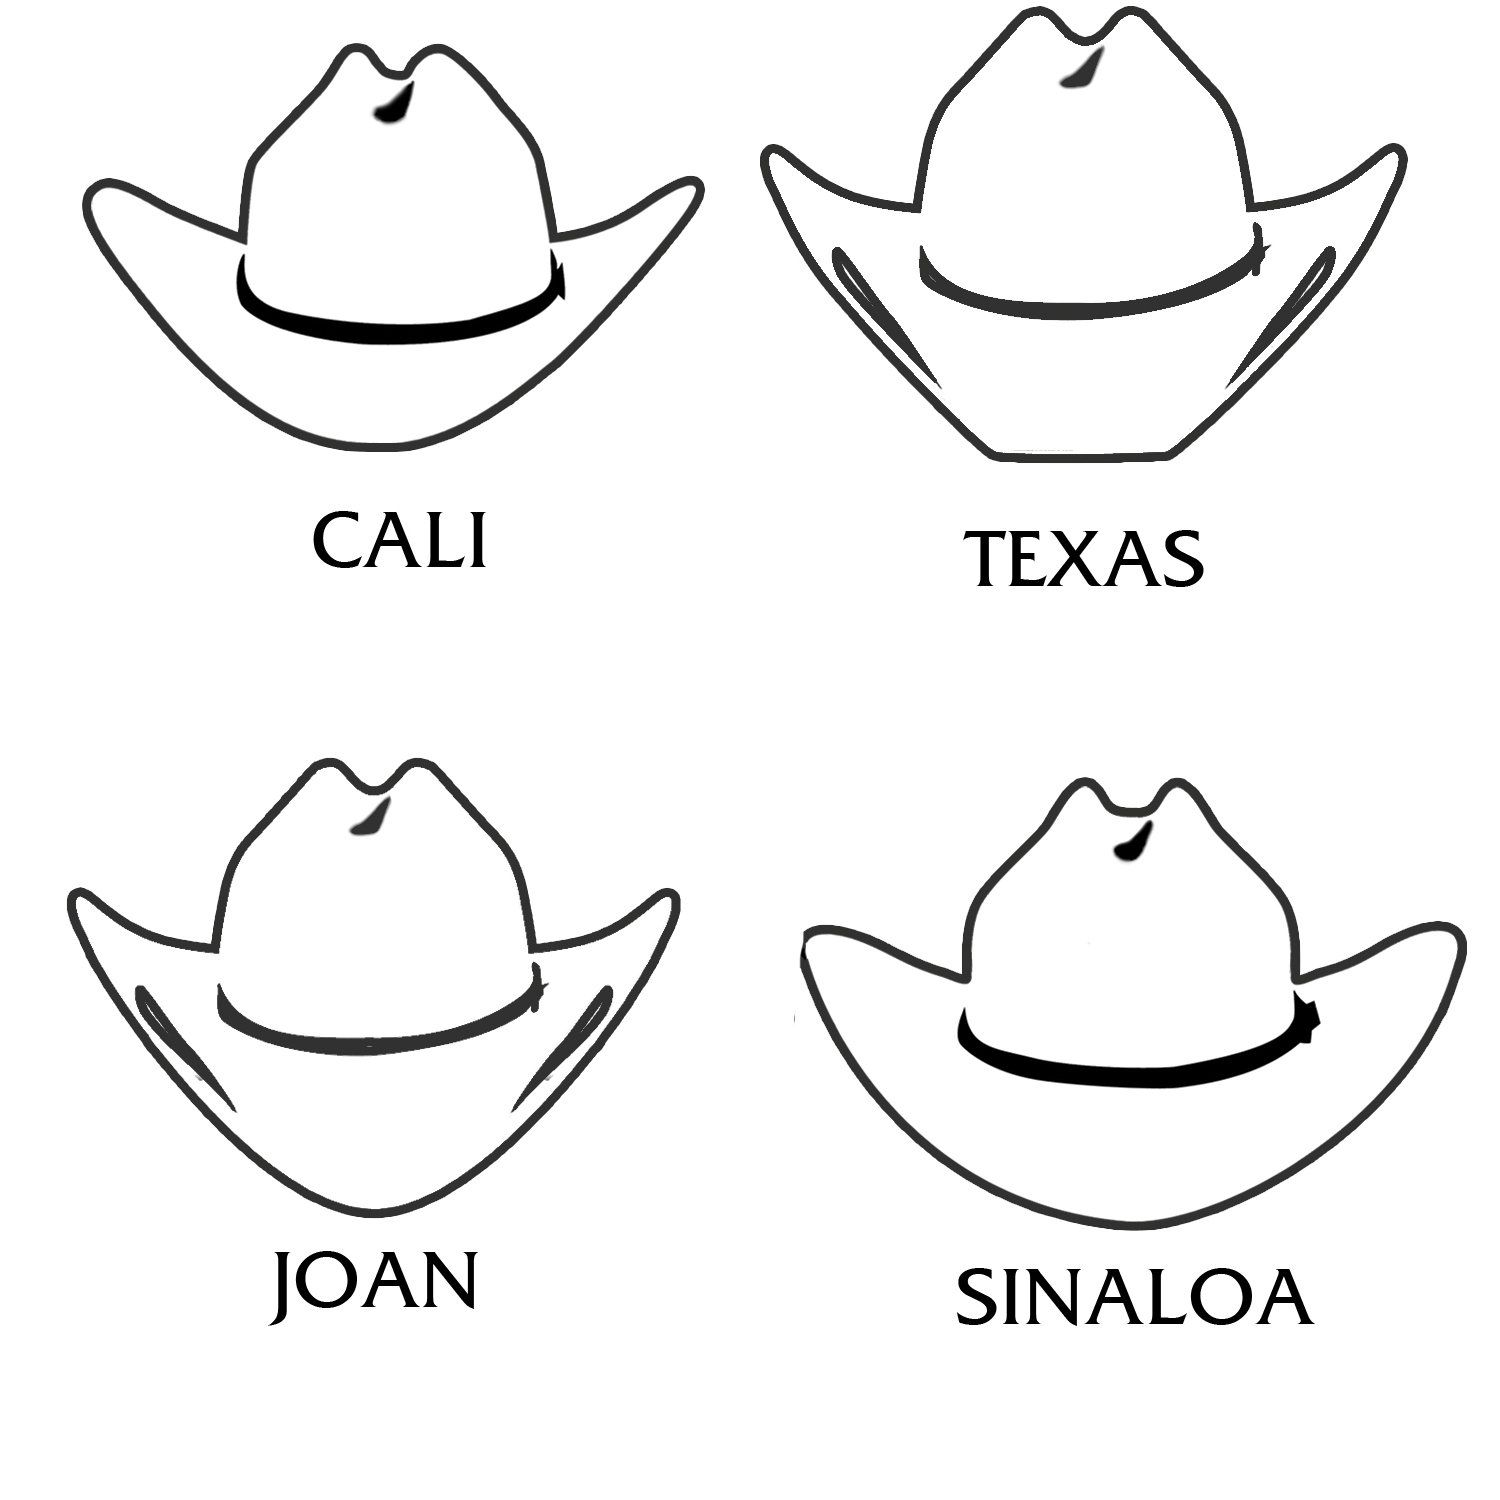 Wild West 500x Straw Hat Traditional Cattleman Crease Crown Cowboy Hat Drawing Cowboy Hats Best Cowboy Hats